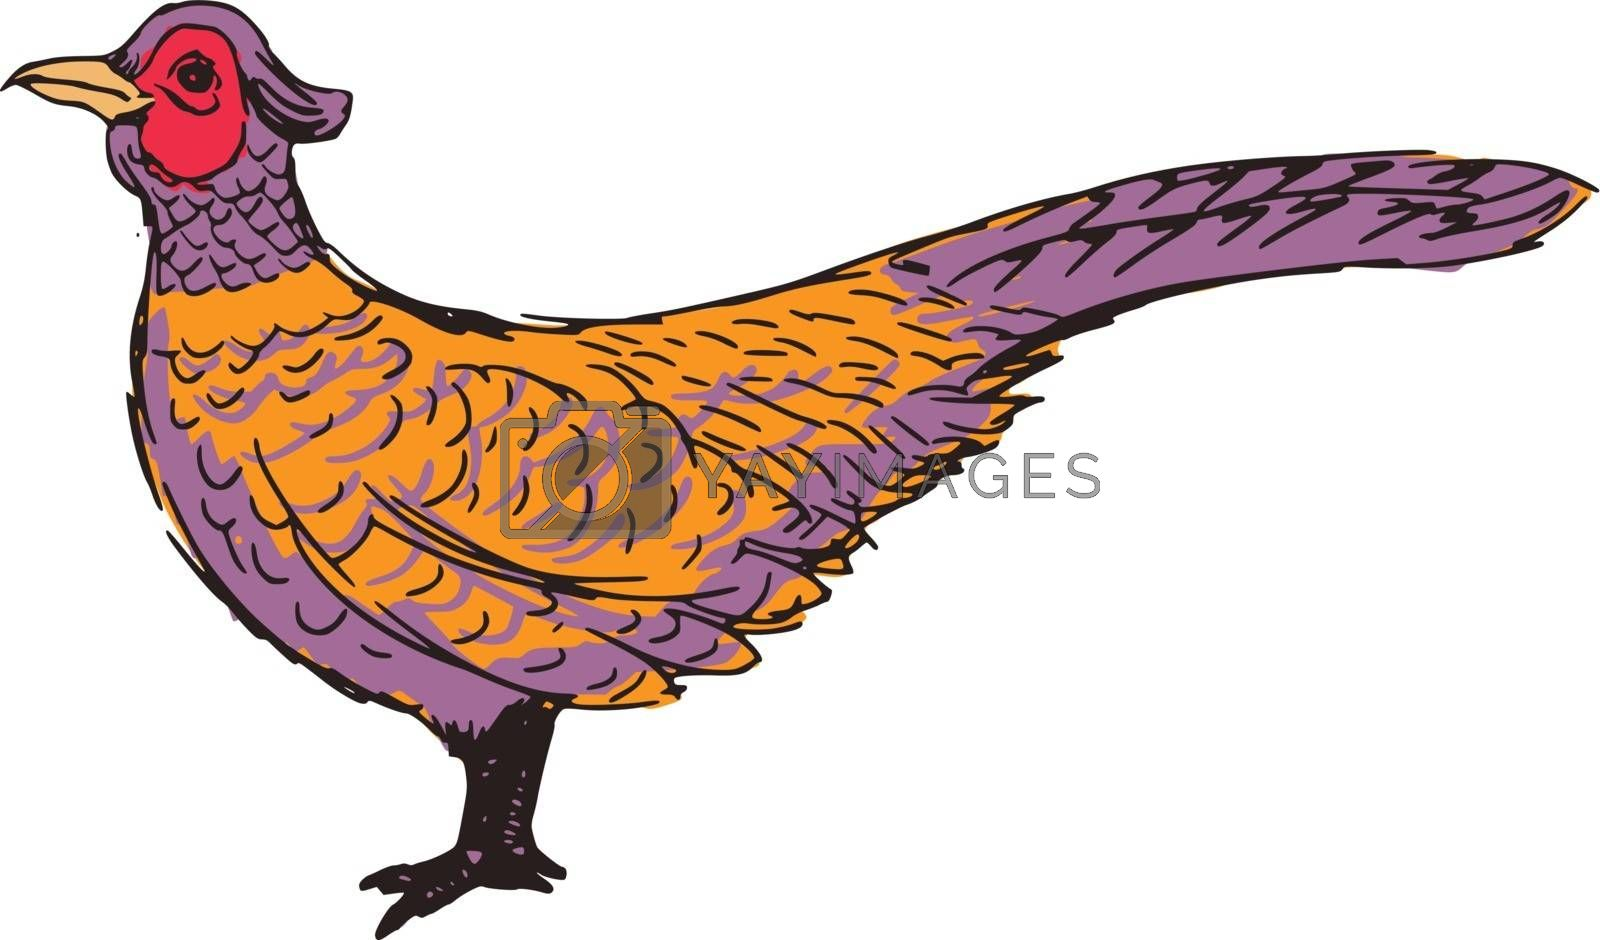 Royalty free image of pheasant by Perysty